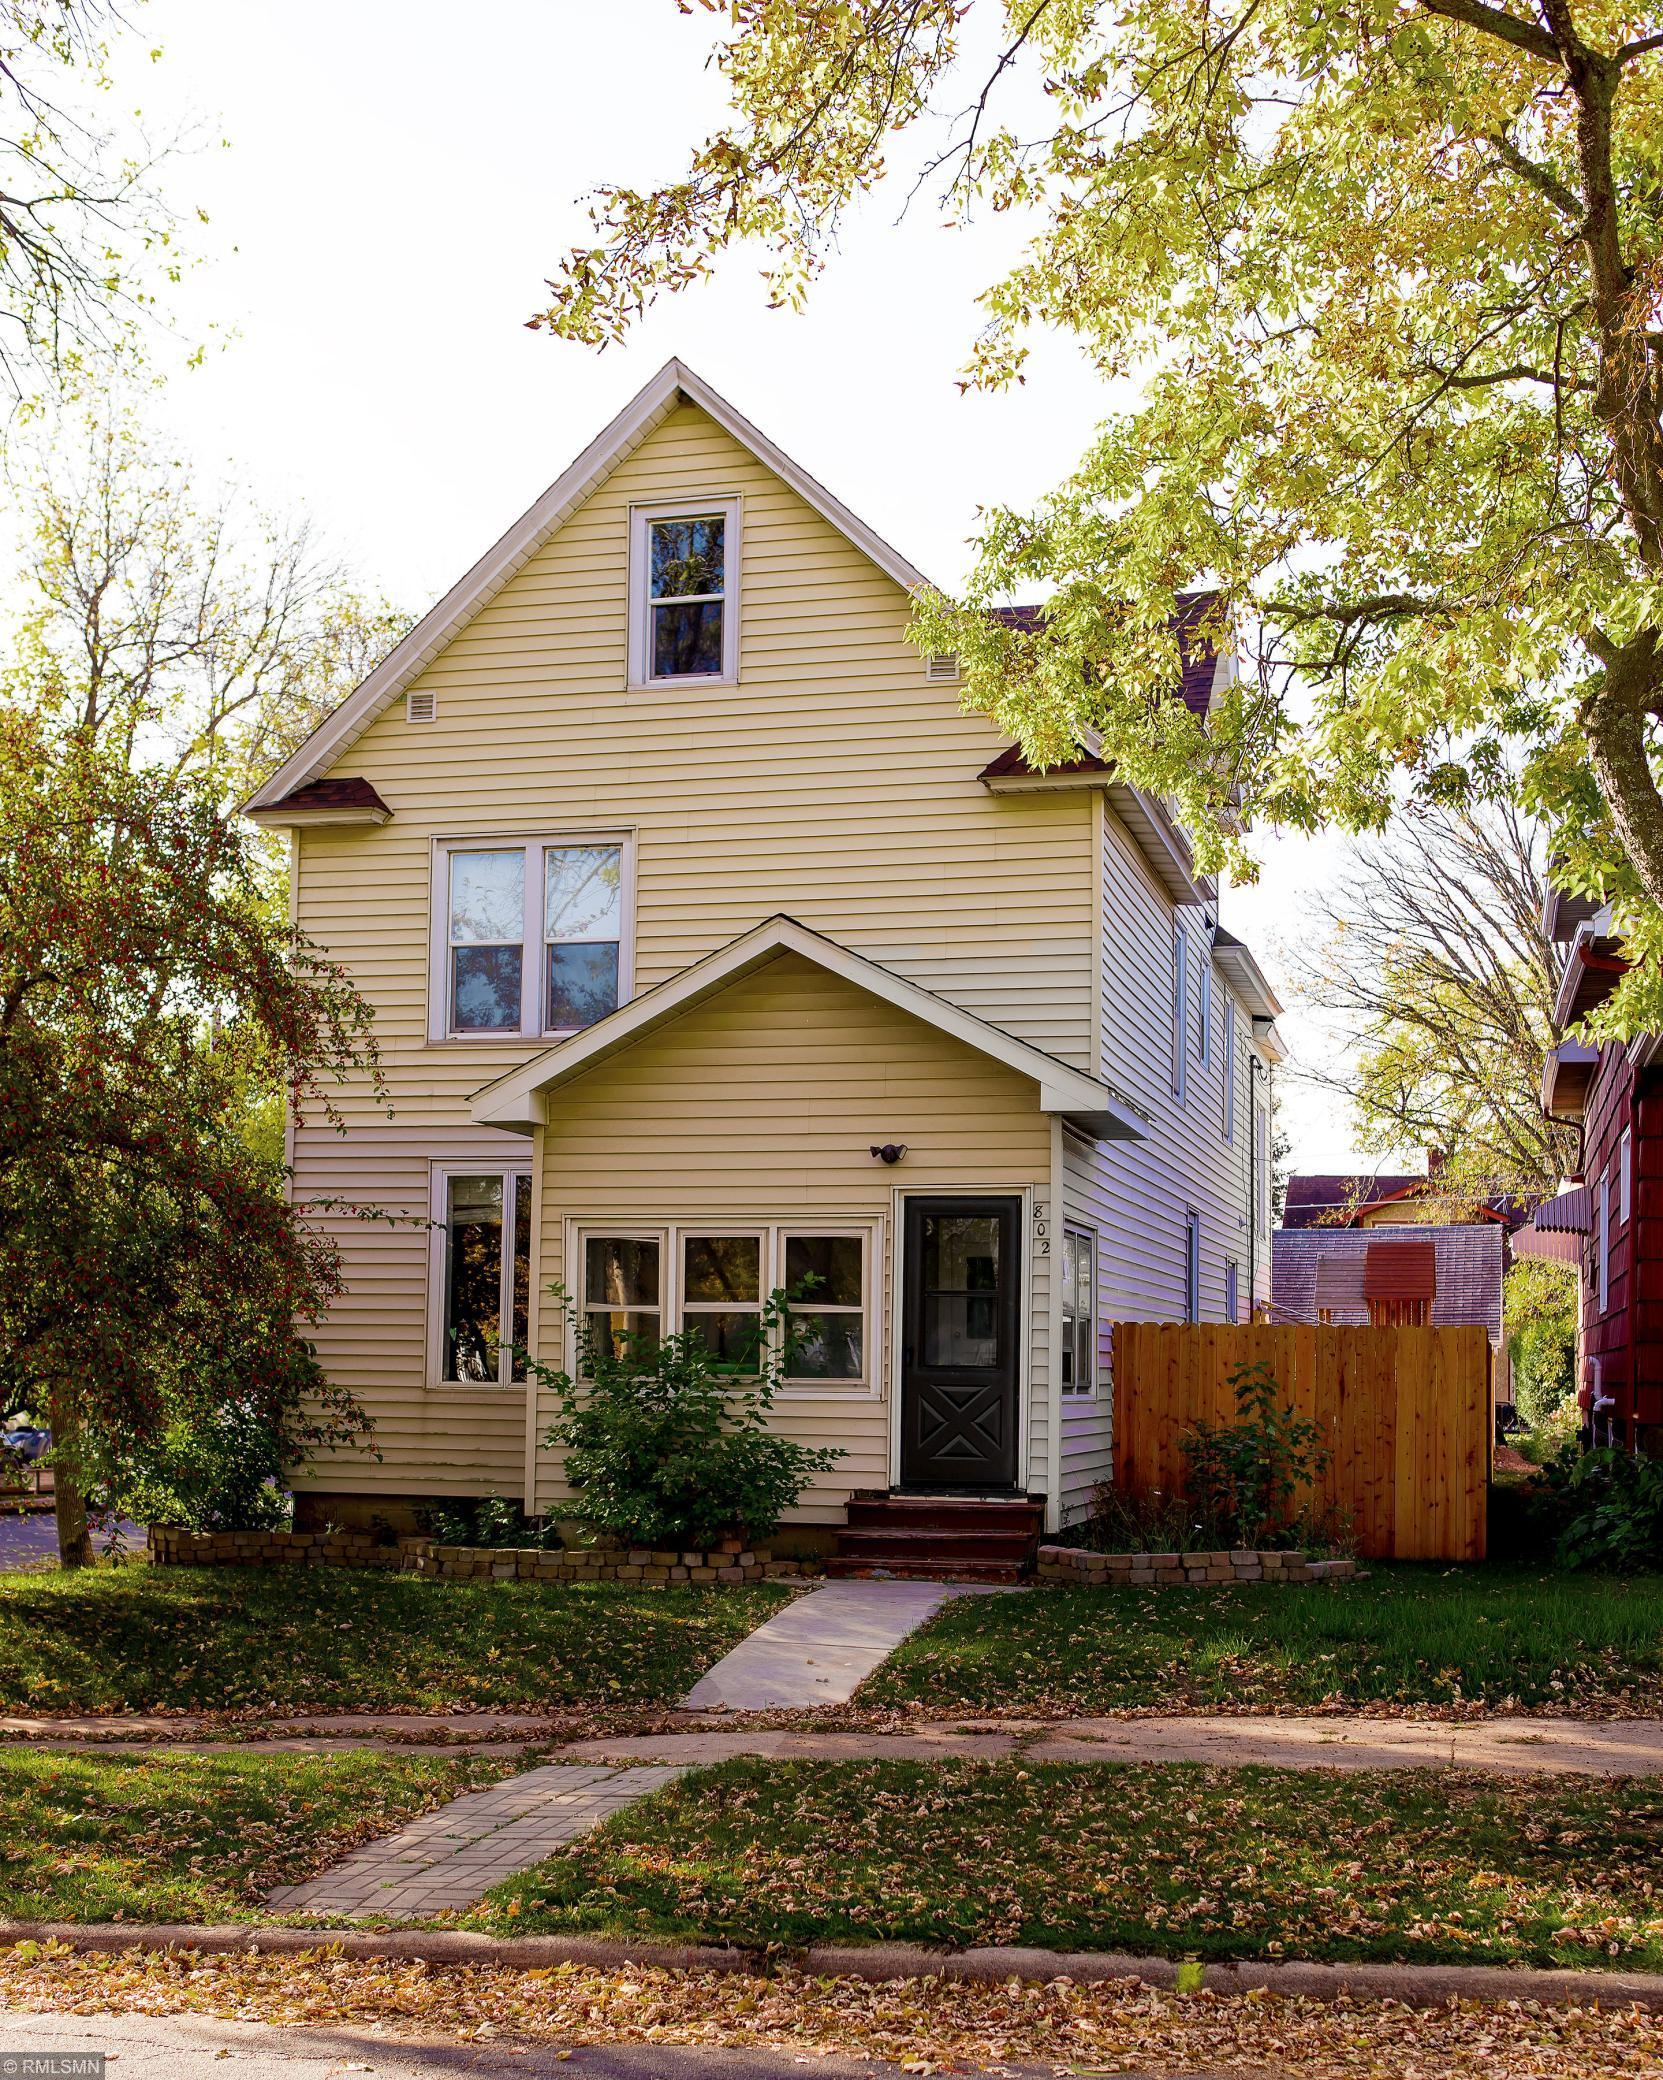 802 11th Street N Property Photo - Virginia, MN real estate listing